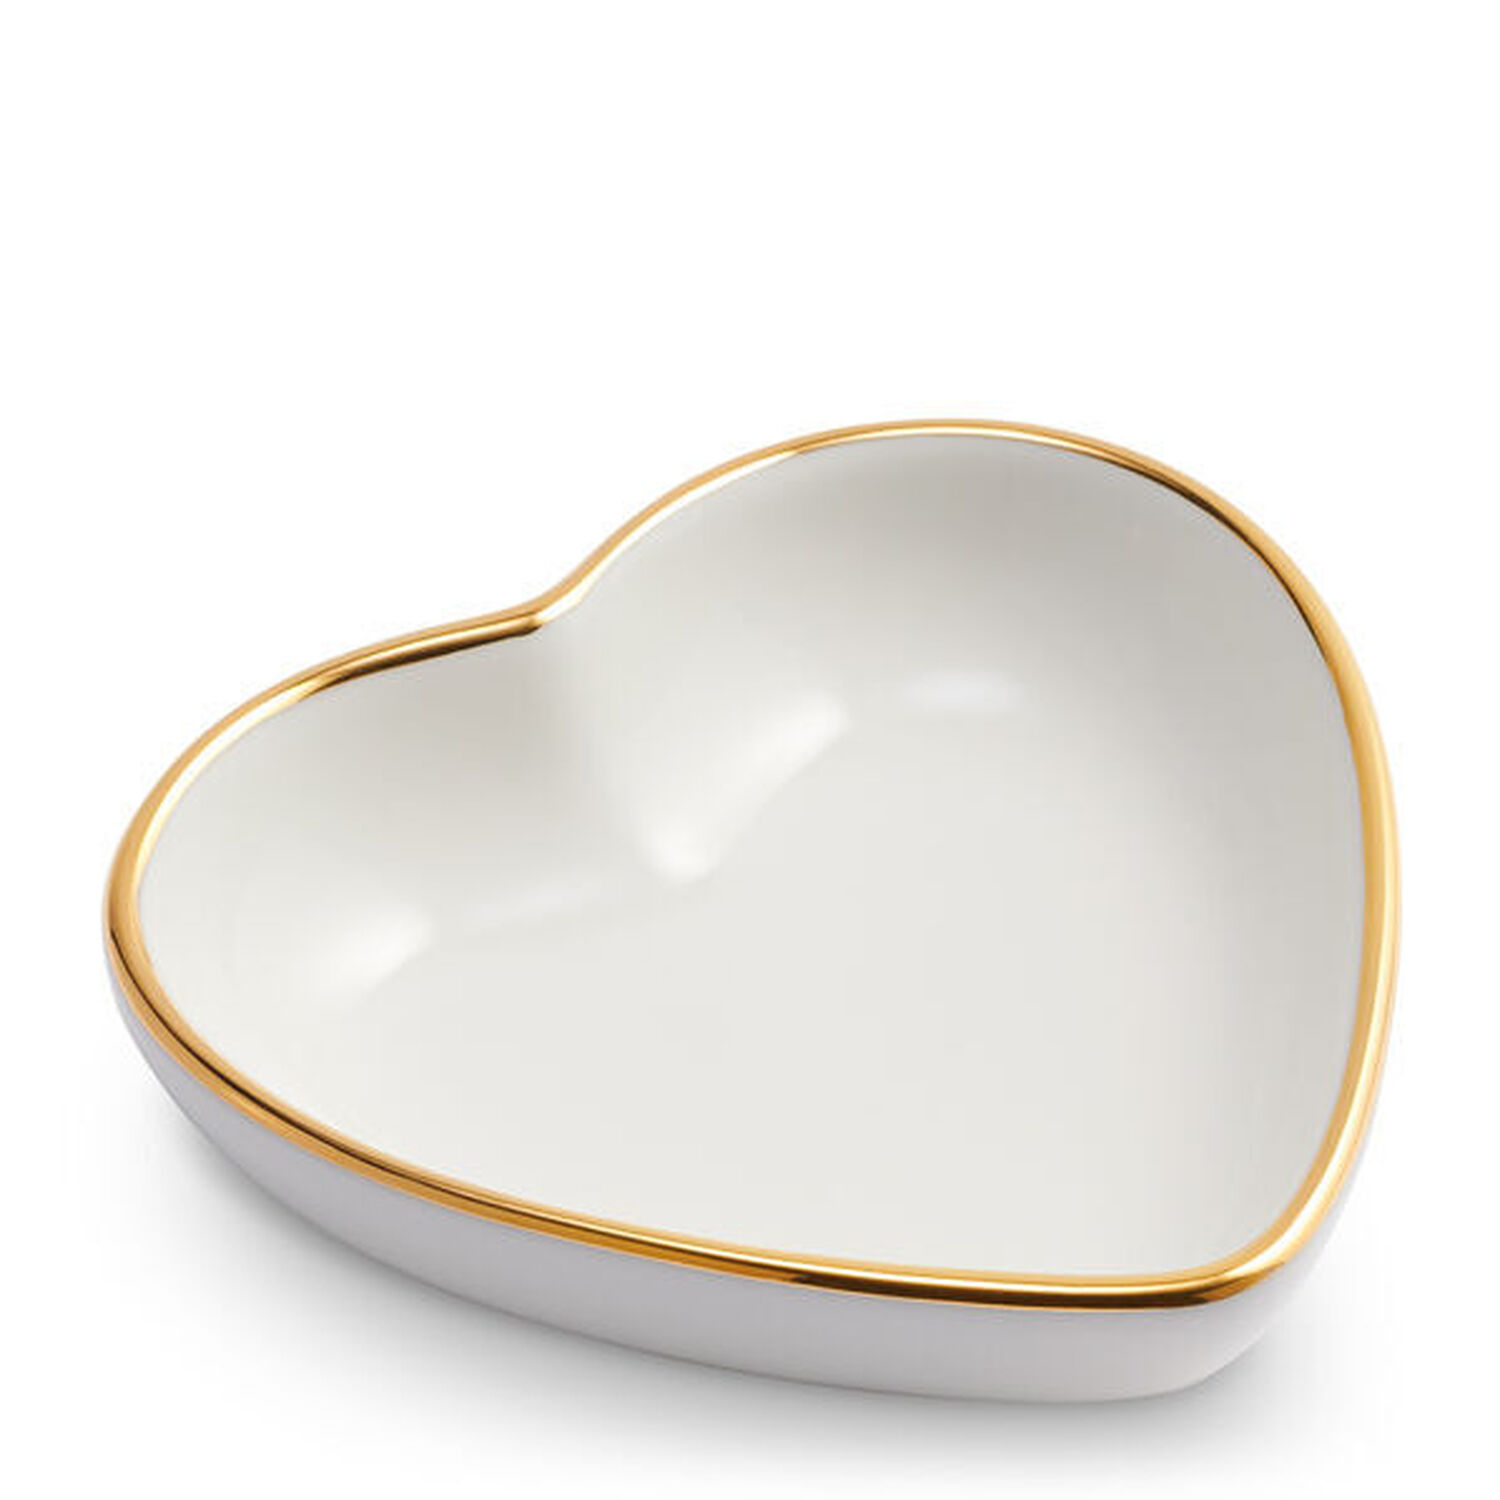 Heart Dish with Gold Rim